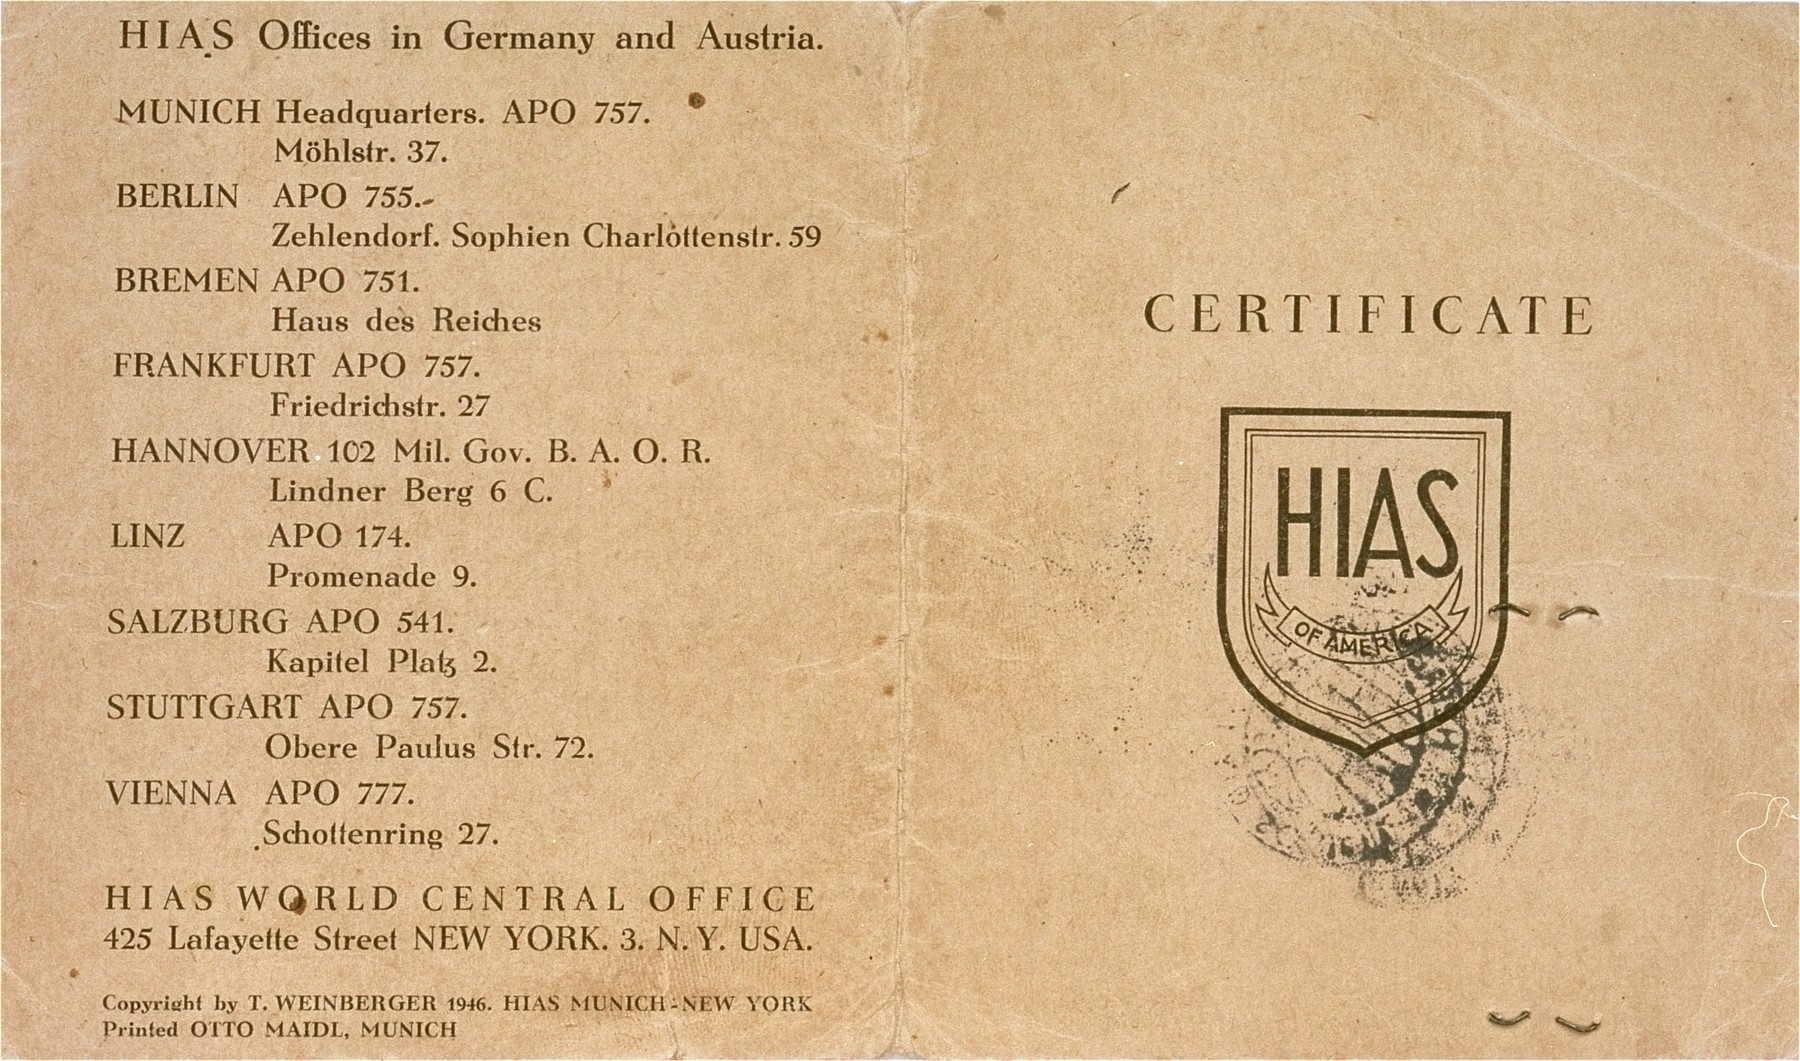 Cover of a HIAS immigration certificate issued to Manius Notowicz in Munich.  The document states that Notowicz will travel on the Marine Flasher on February 22, 1947 to New York City.